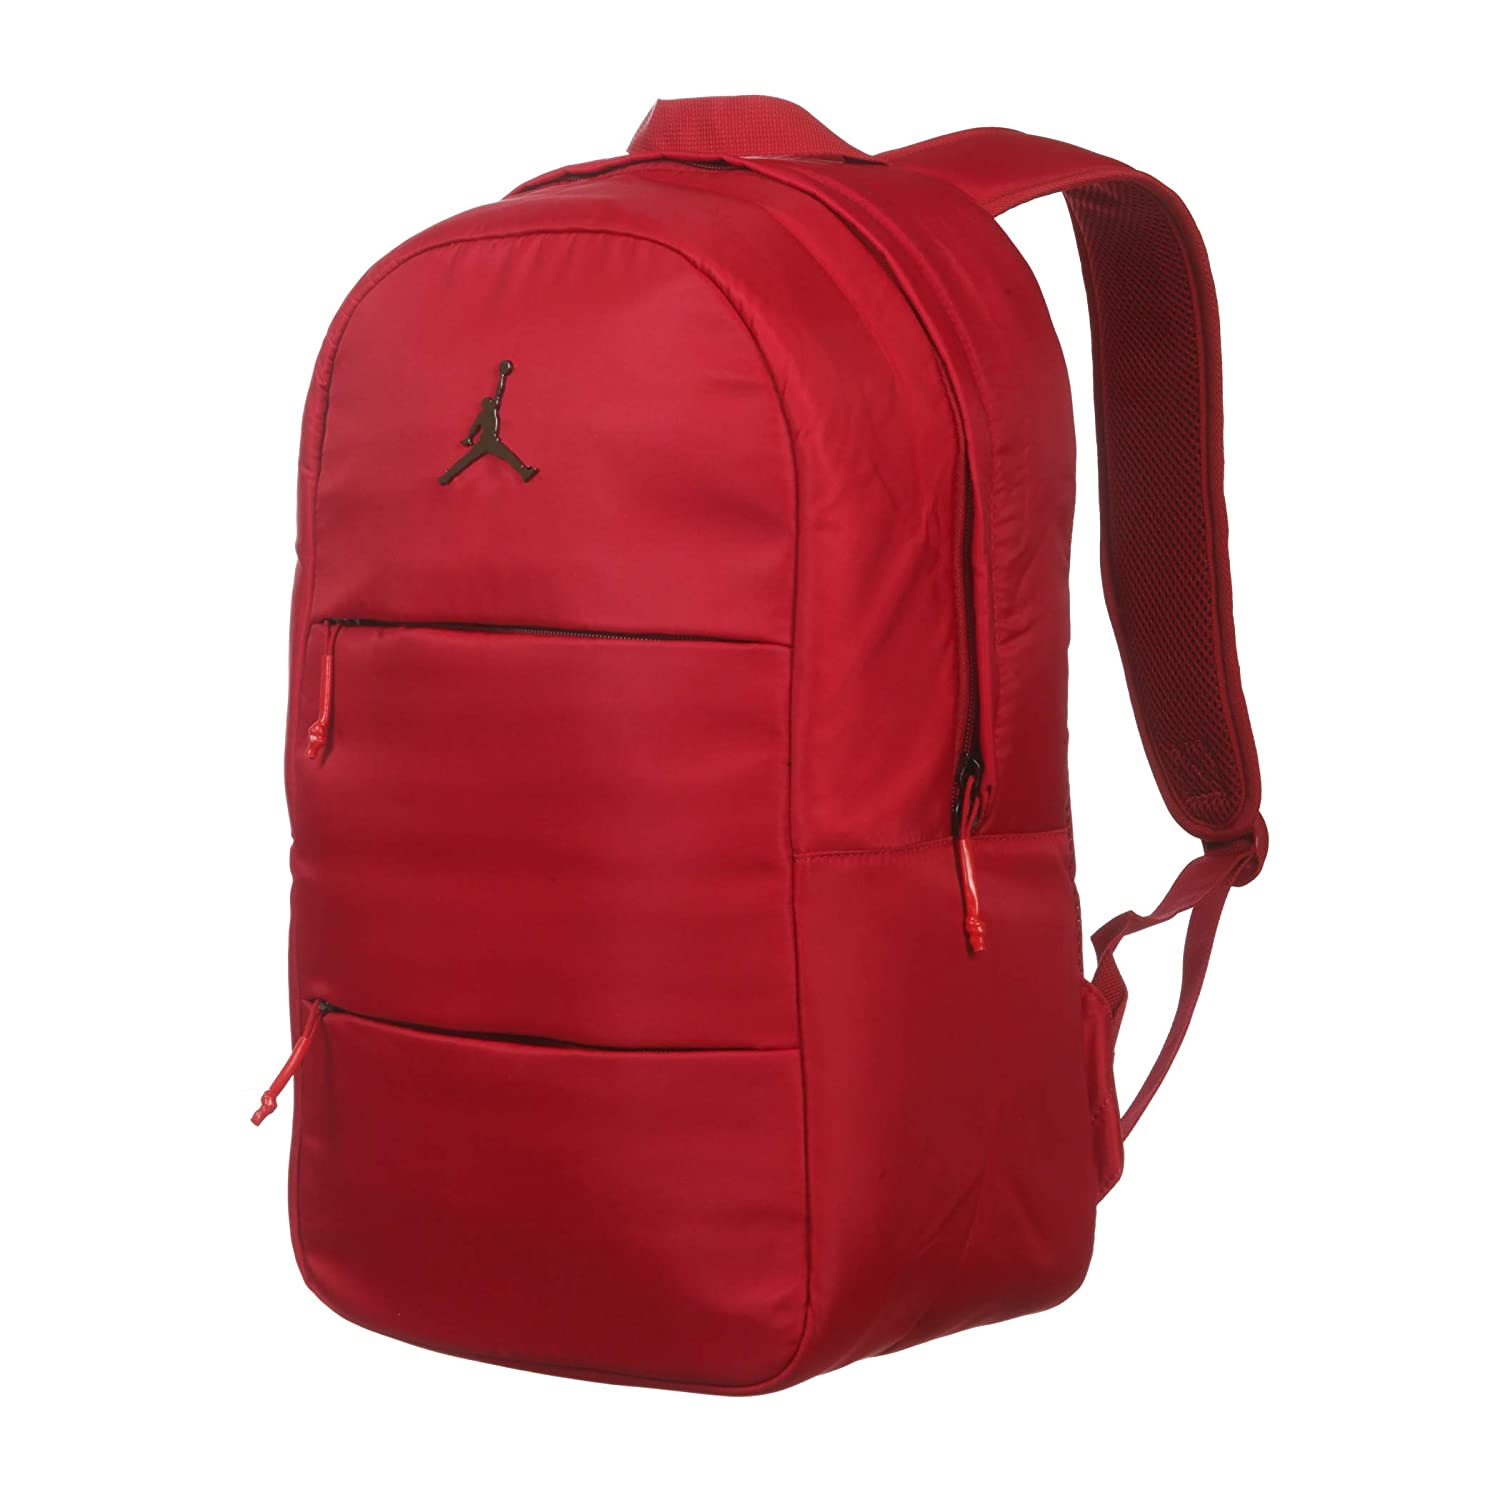 brand new 8d8e0 43f60 Amazon.com   Nike Air Jordan Session Club Backpack Gym Red   Casual Daypacks